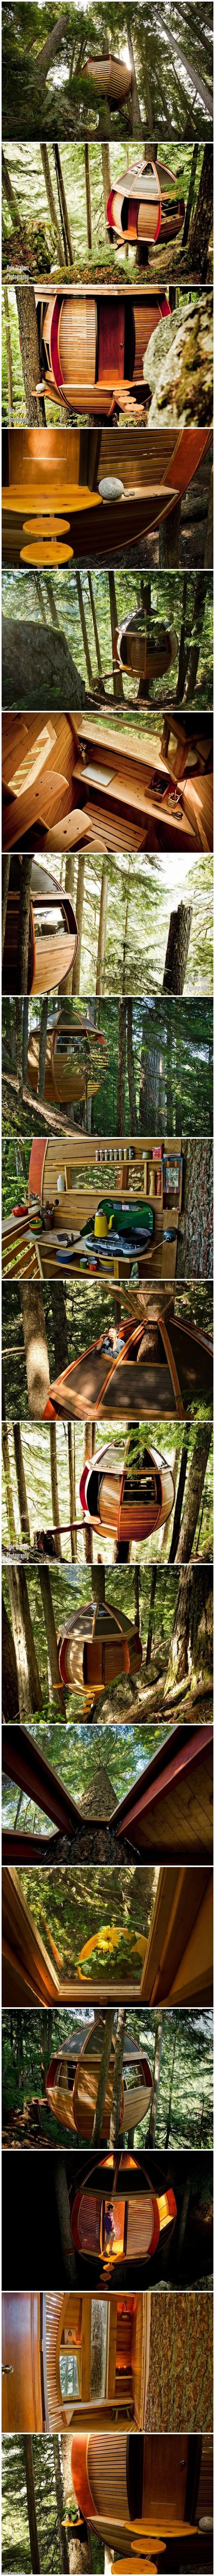 Hidden Egg Treehouse - This would be SO cool!